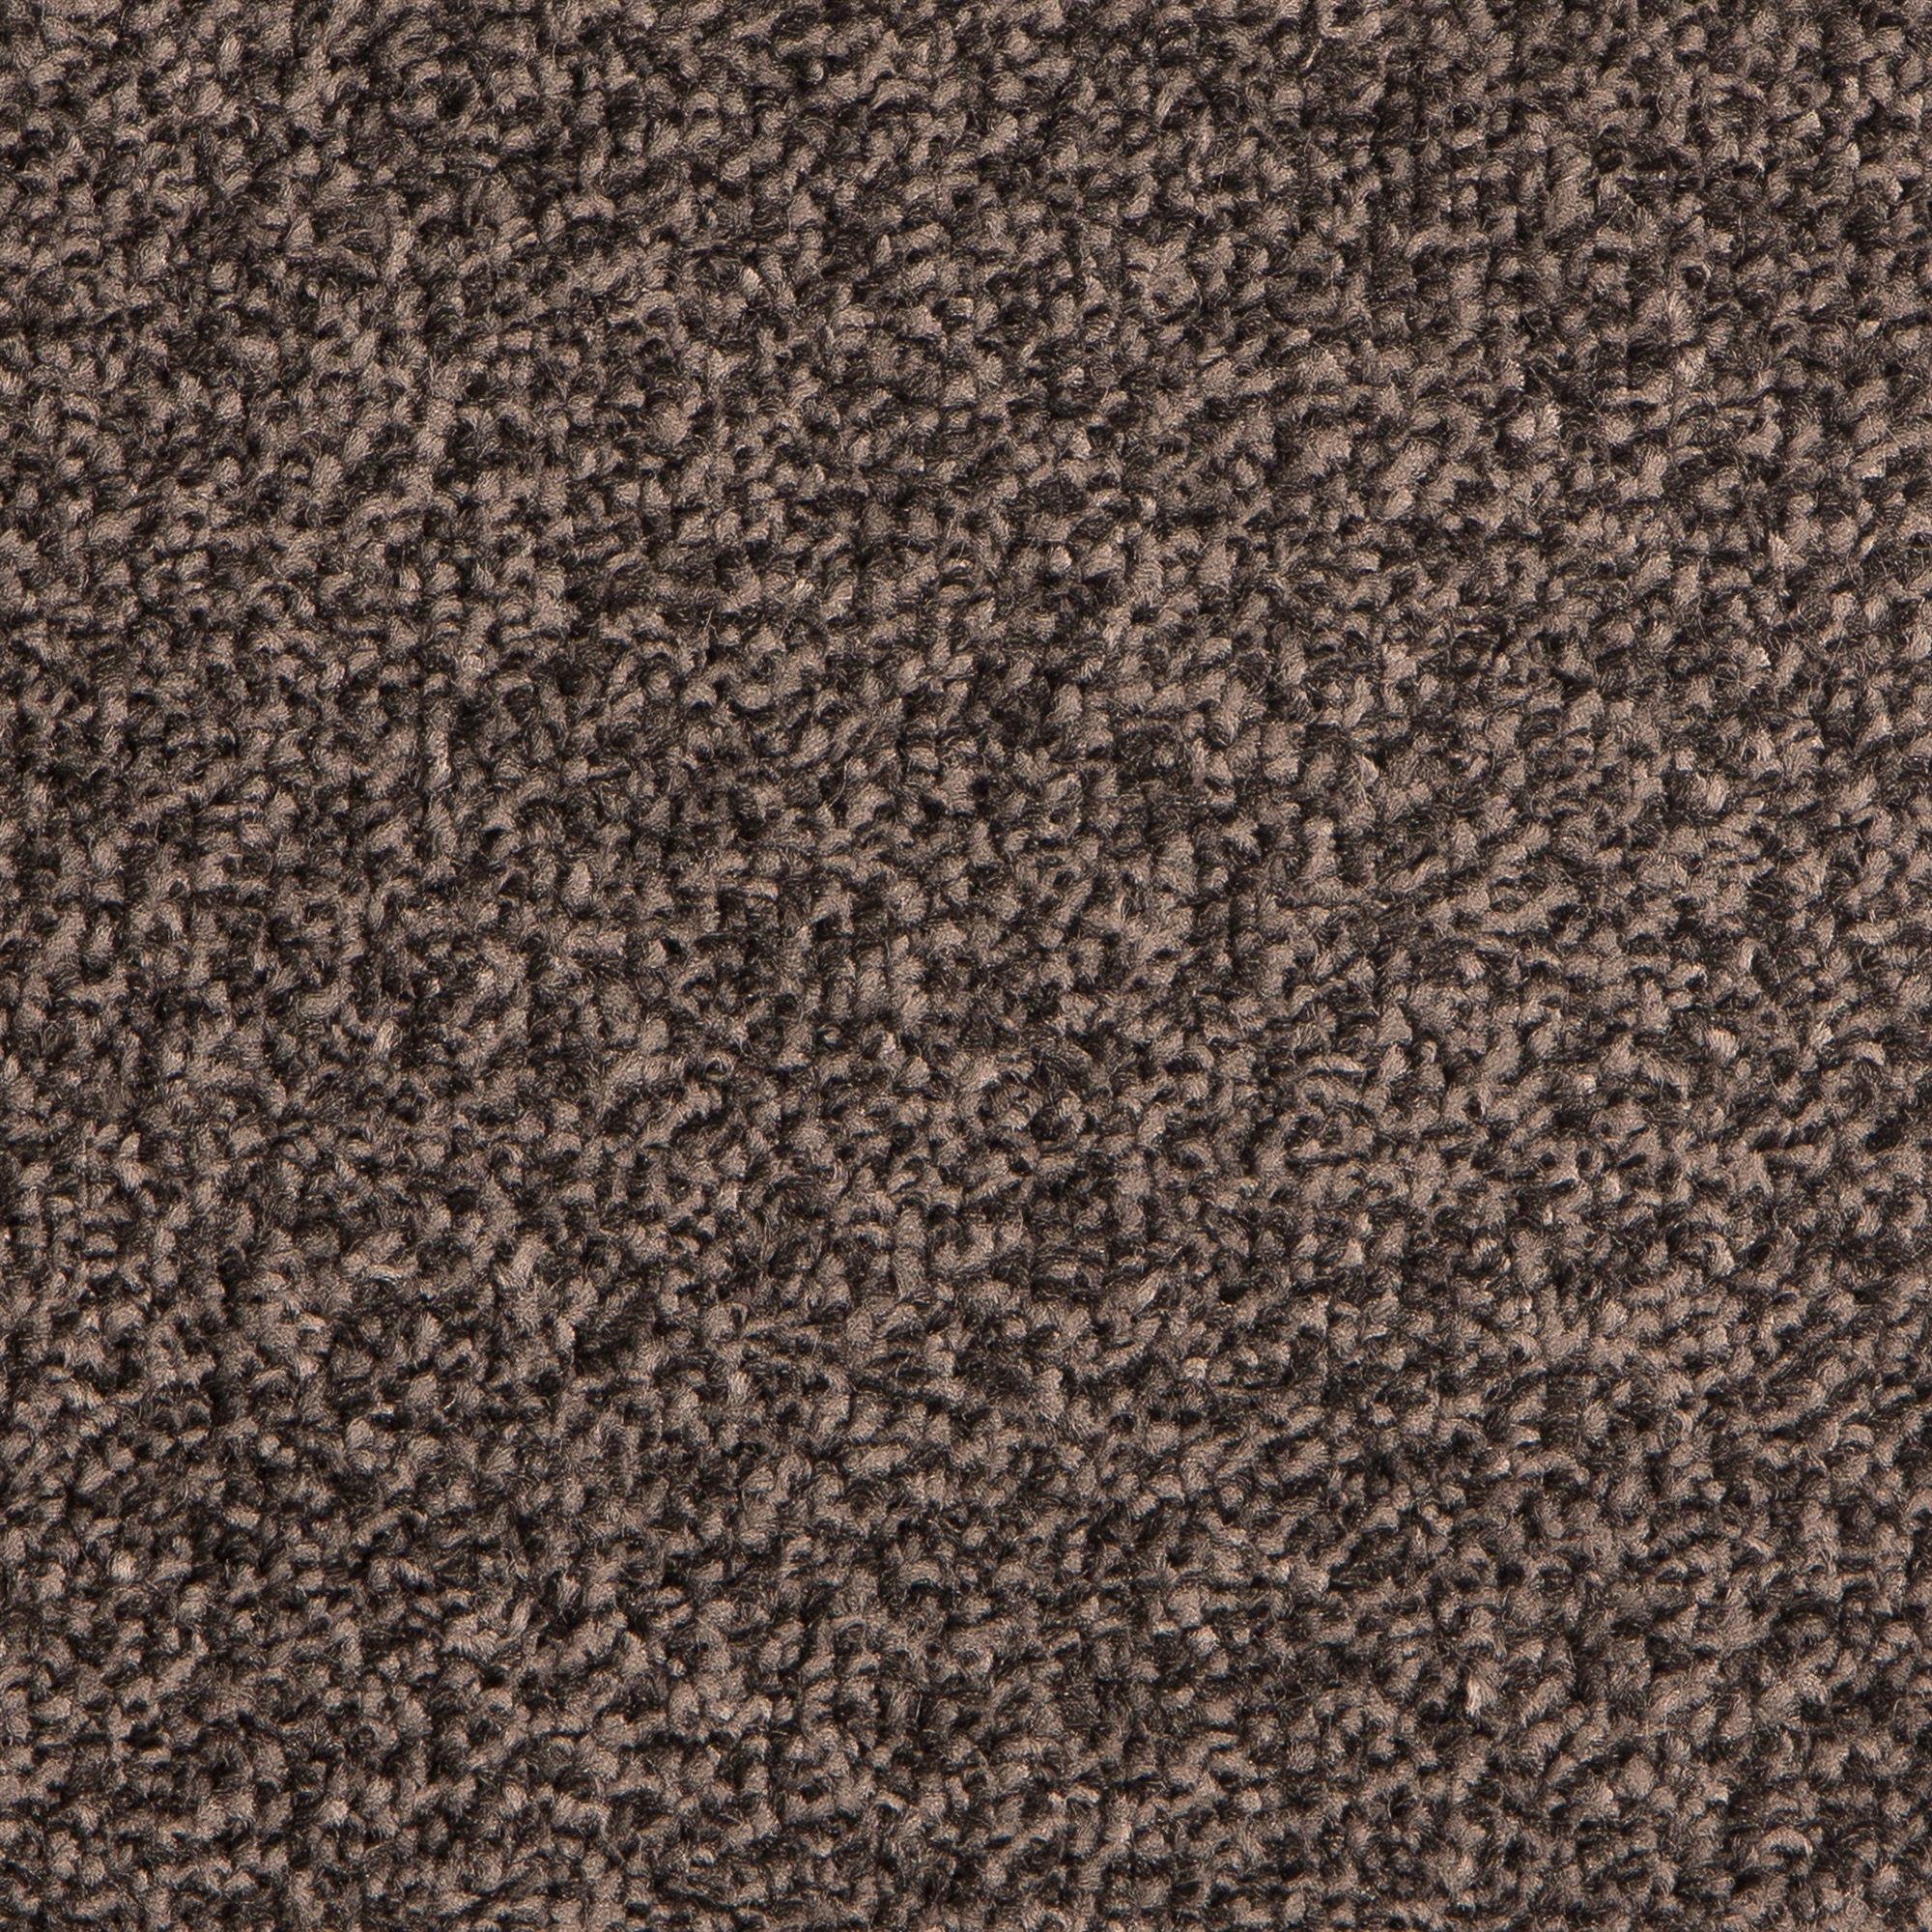 First Time Buyer Epic Carpet, Slate, swatch